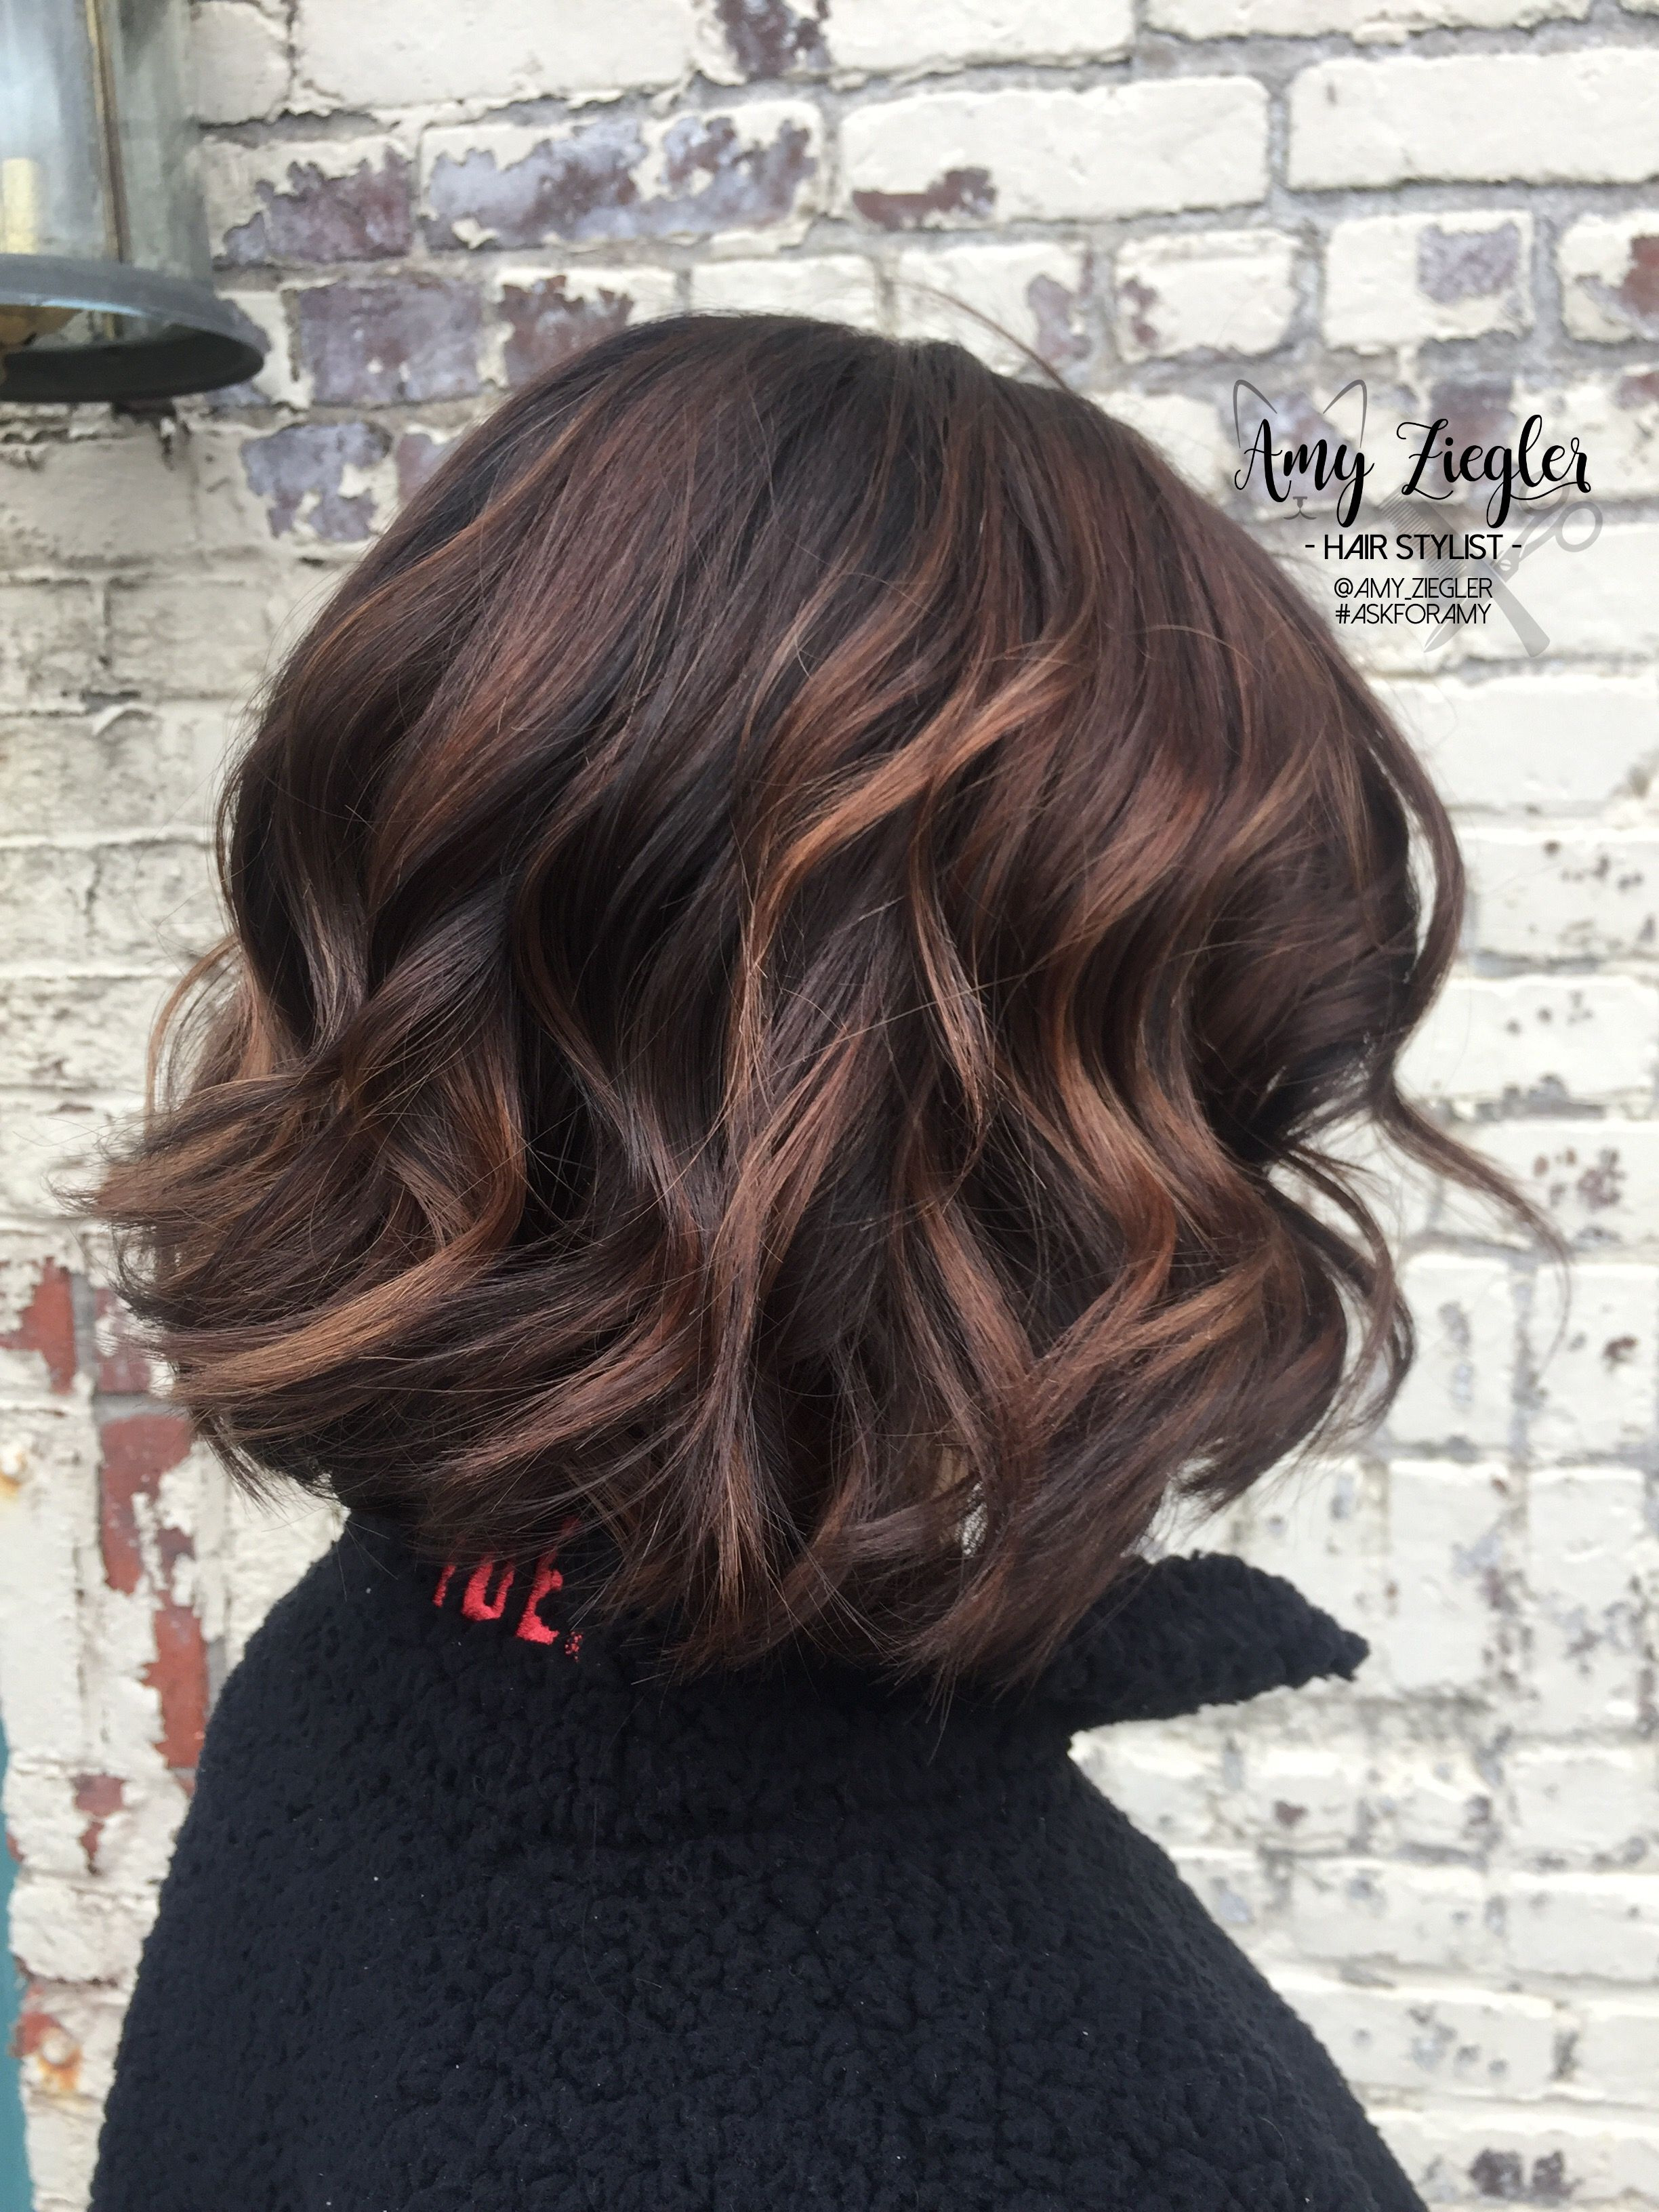 Chocolate Balayage On Short Hair By Amy Ziegler Askforamy Versatilestrands Short Ombre Hair Baliage Hair Long To Short Hair